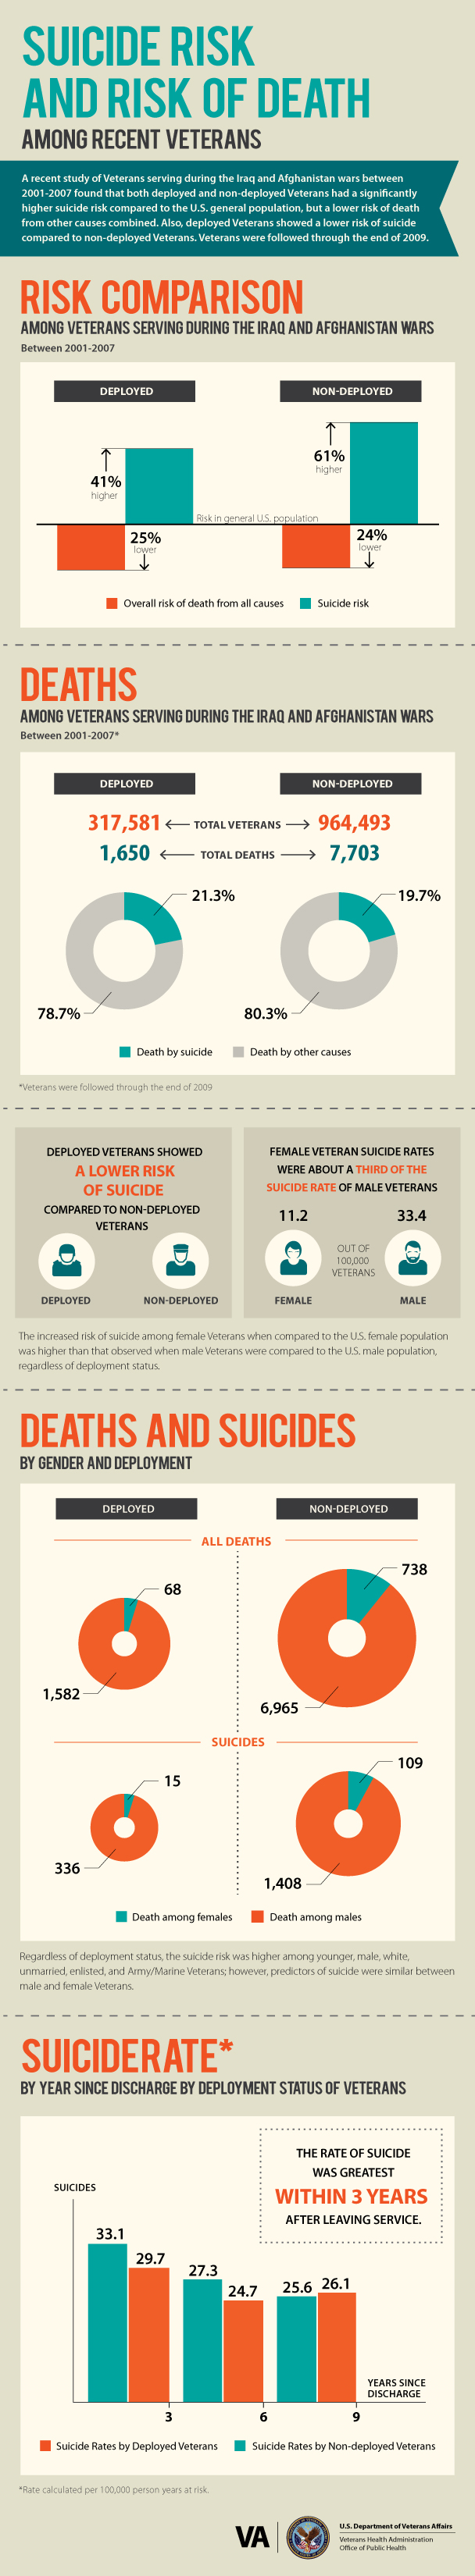 Infographic detailing the risk of suicide in recent Veterans.